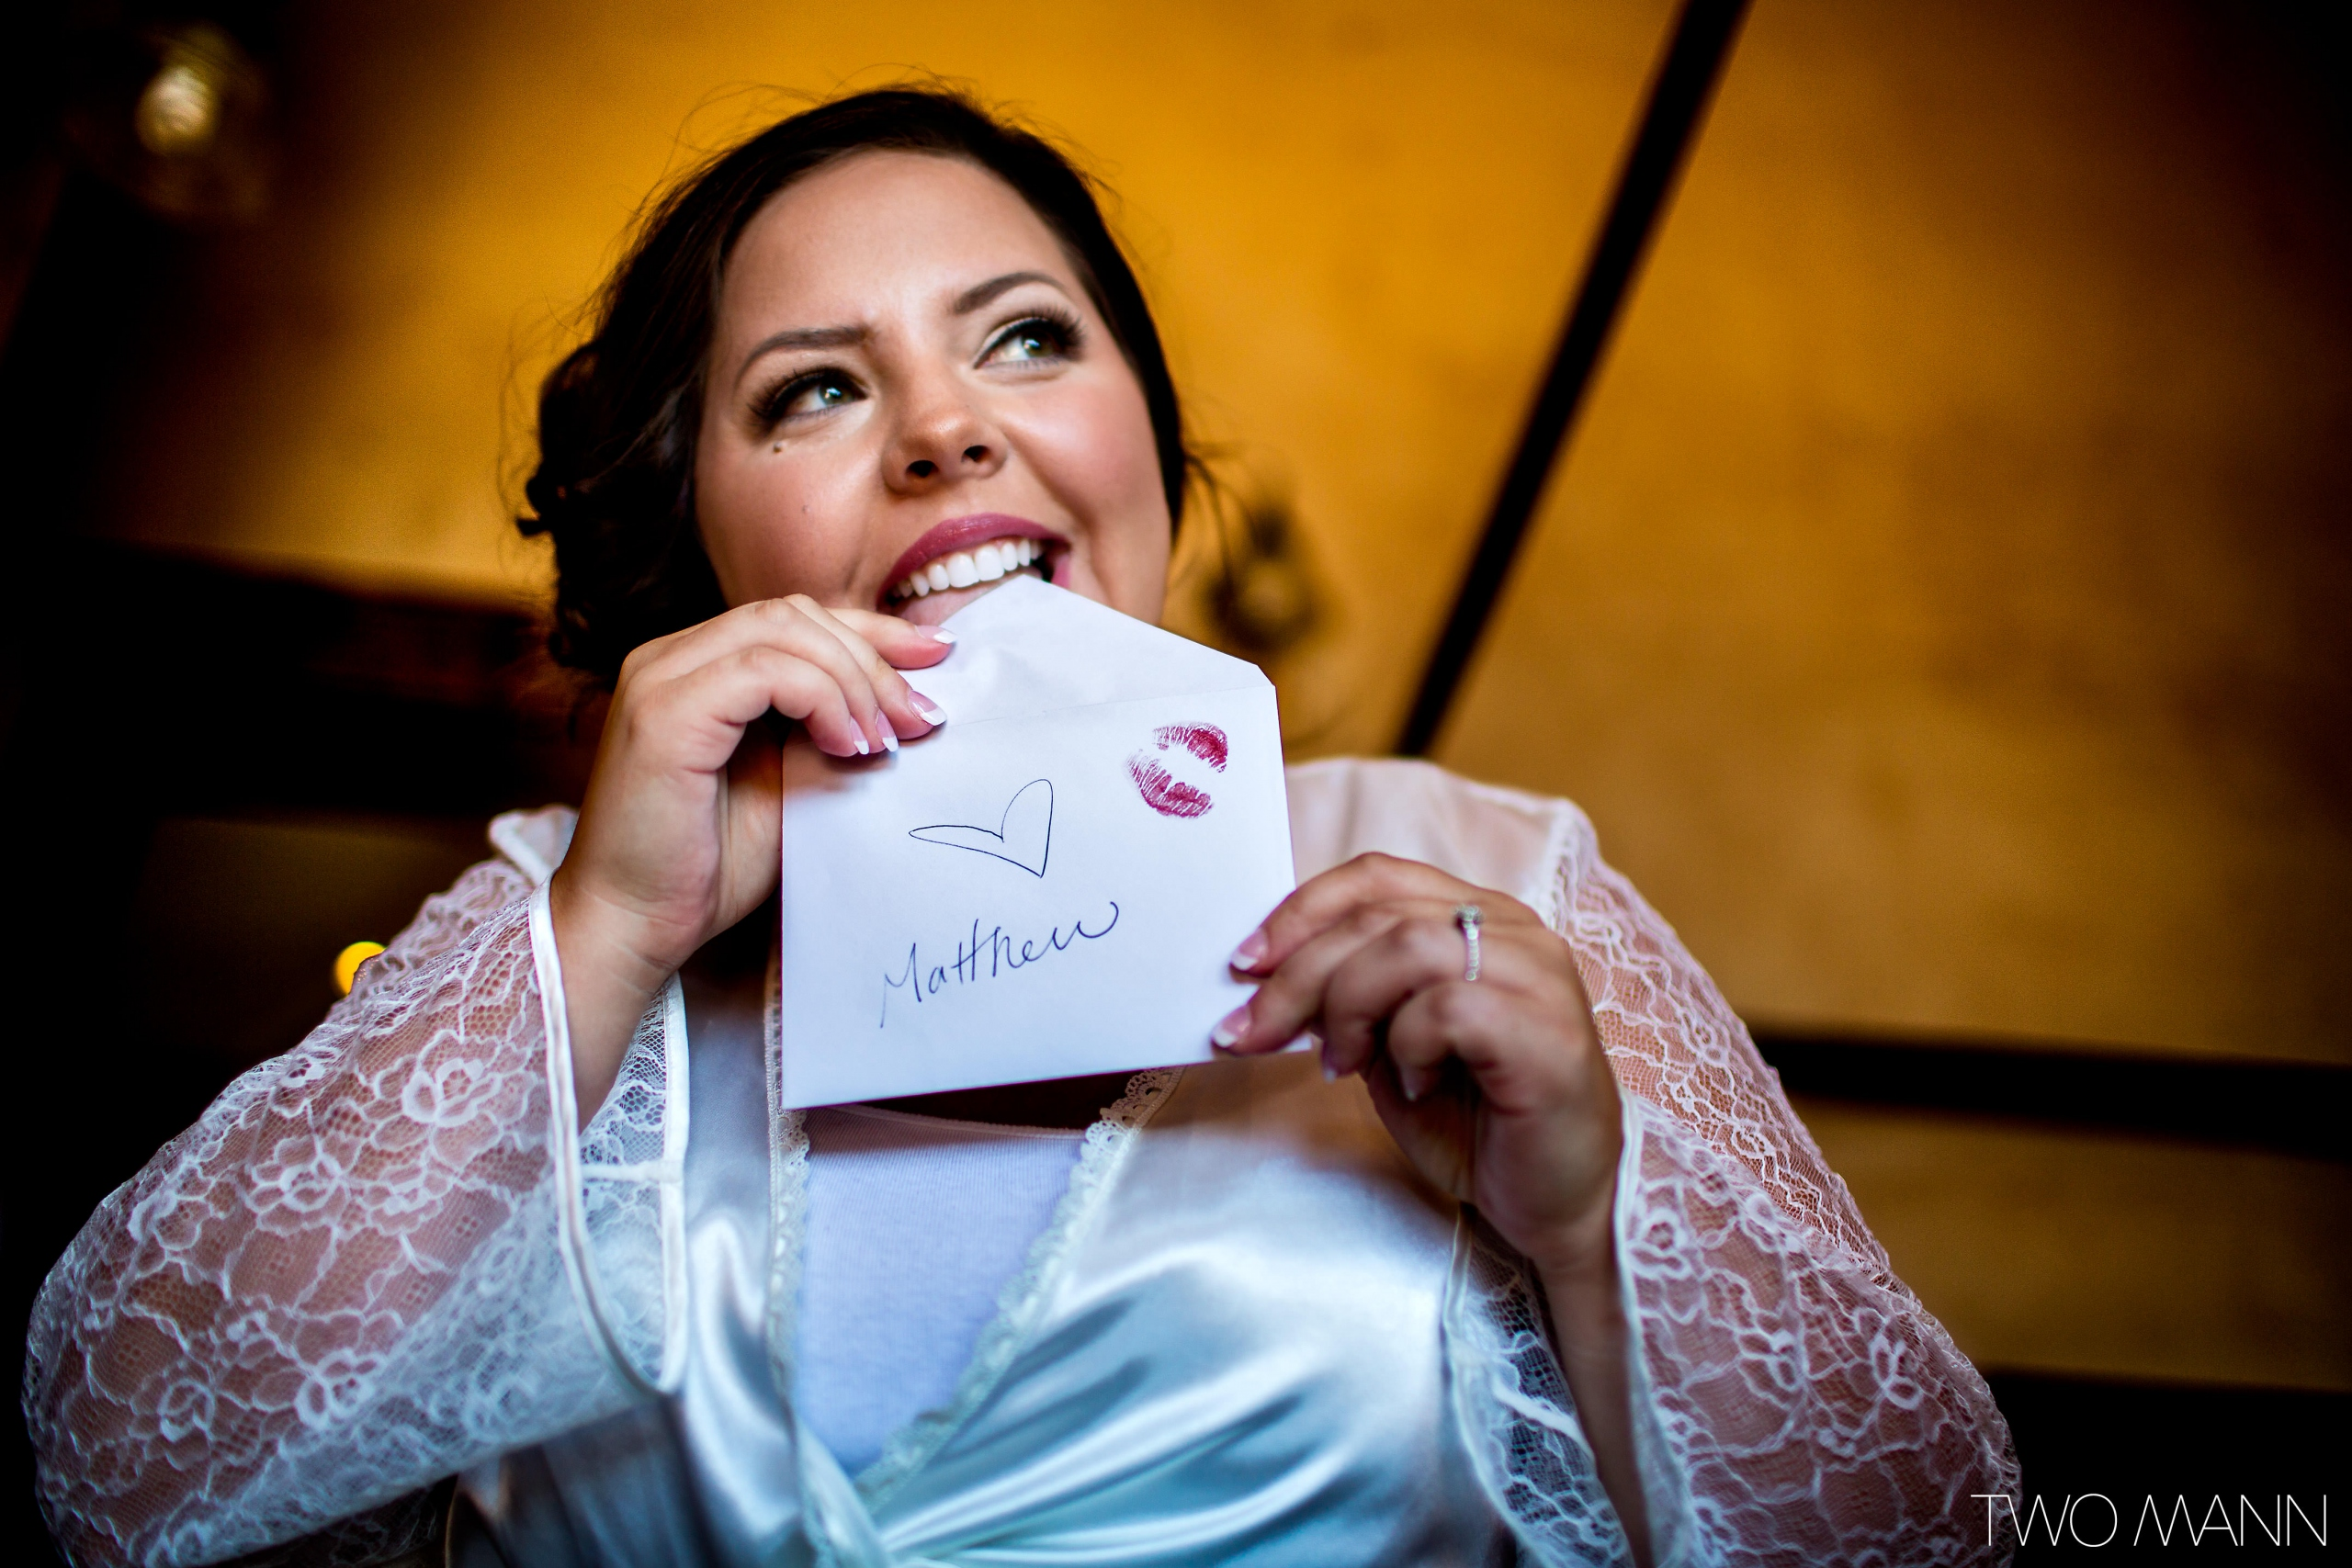 a bride licking an envelope